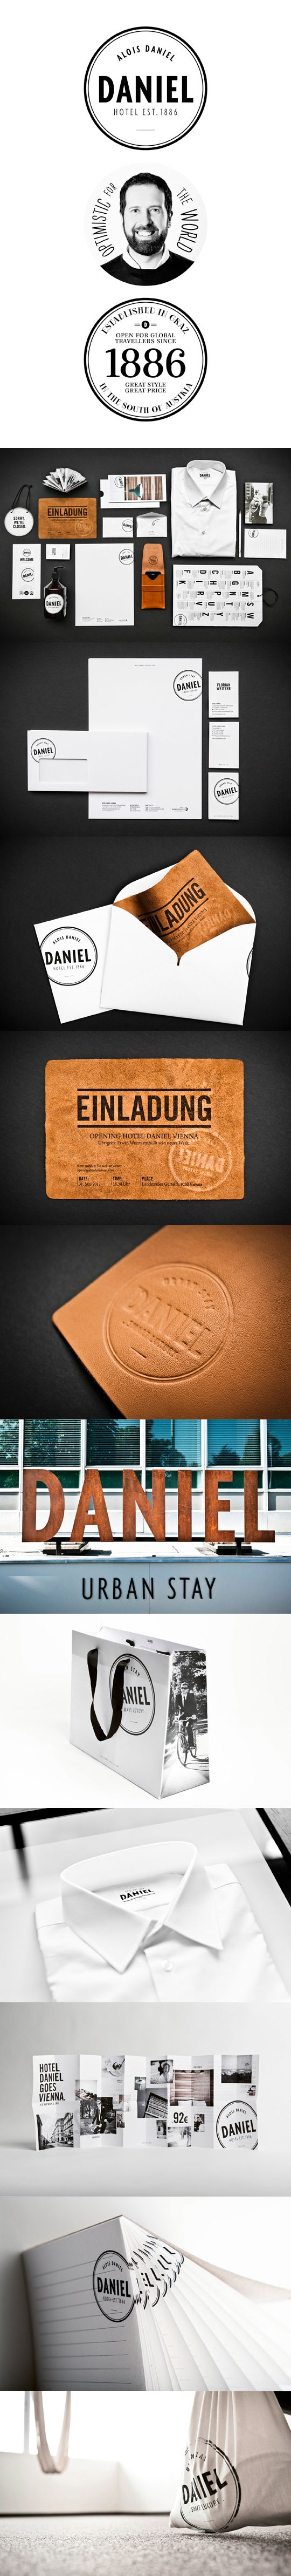 Hotel Daniel by Moodley Brand Identity. #packaging #branding #marketing. PD